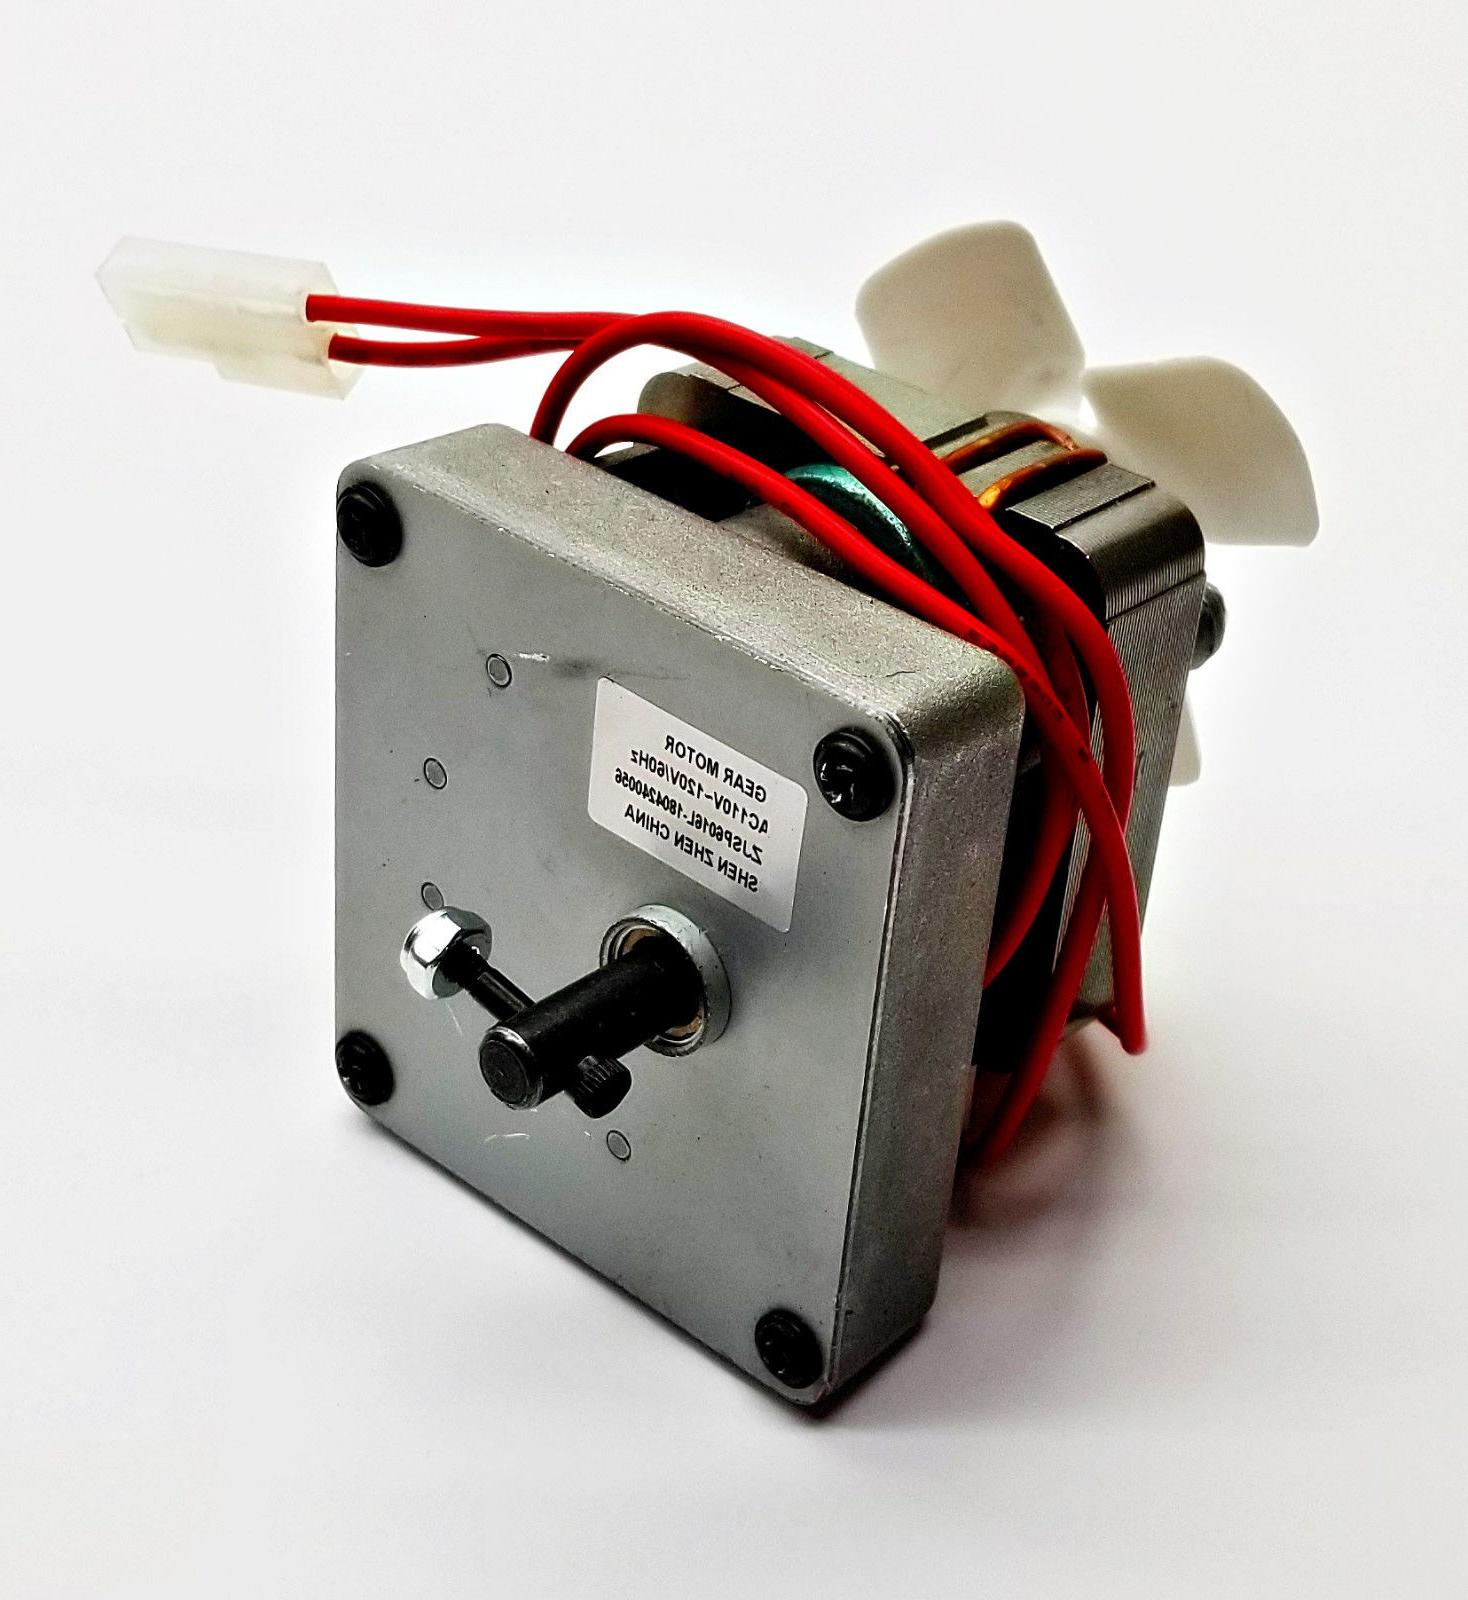 Auger Feed Fuel Motor for Traeger Electric Wood Pellet Smoke